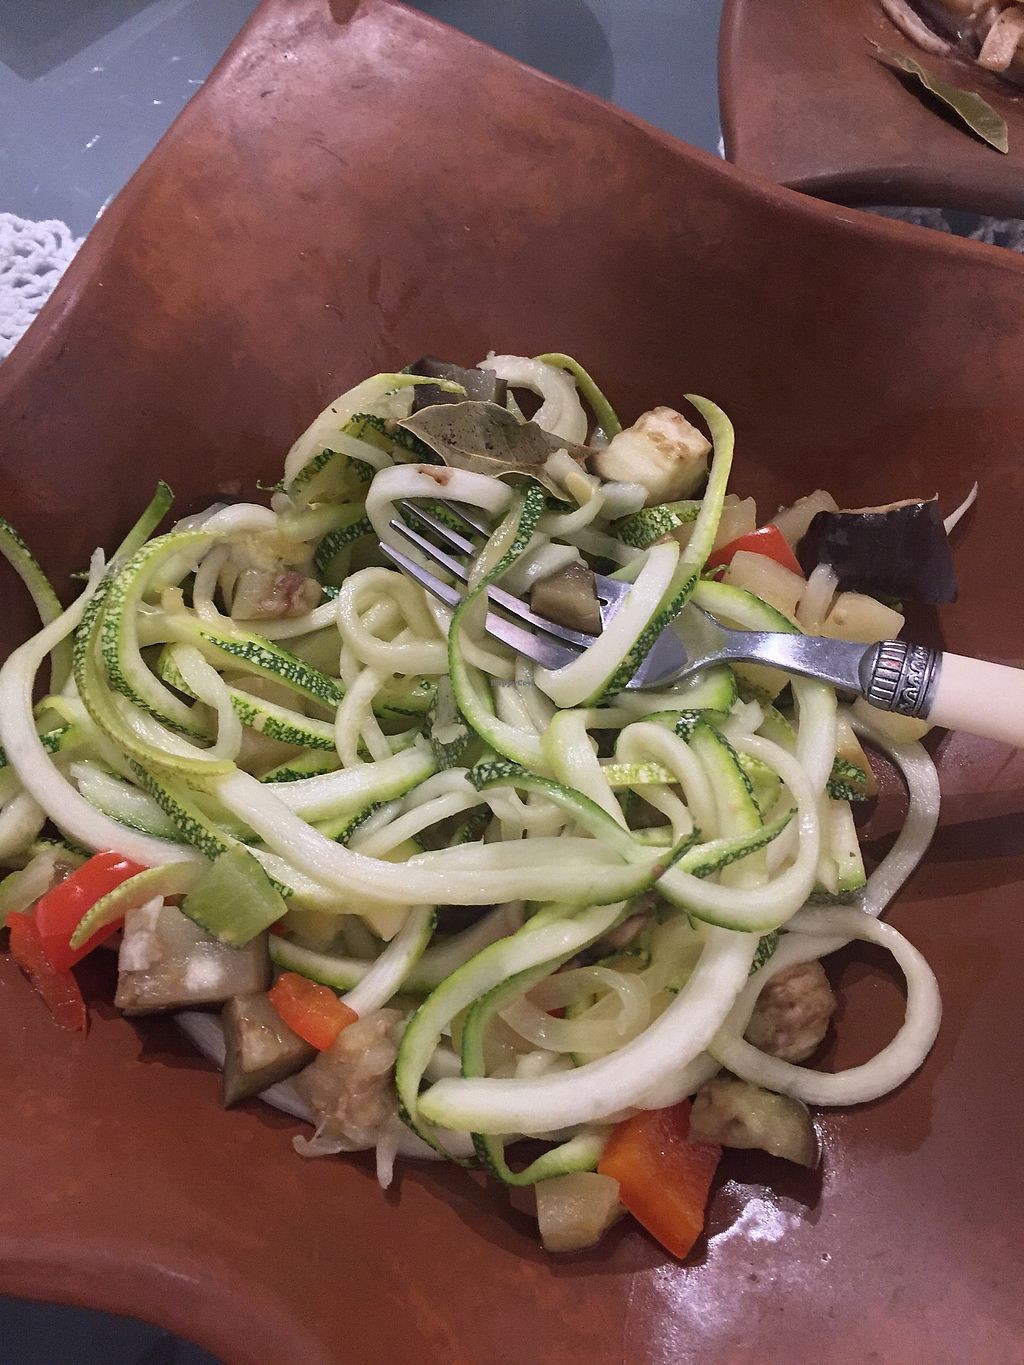 """Photo of El Patio Rojo  by <a href=""""/members/profile/Dianebg"""">Dianebg</a> <br/>Raw spaghetti with sautéed veggies in coconut oil  <br/> November 11, 2017  - <a href='/contact/abuse/image/104849/324434'>Report</a>"""